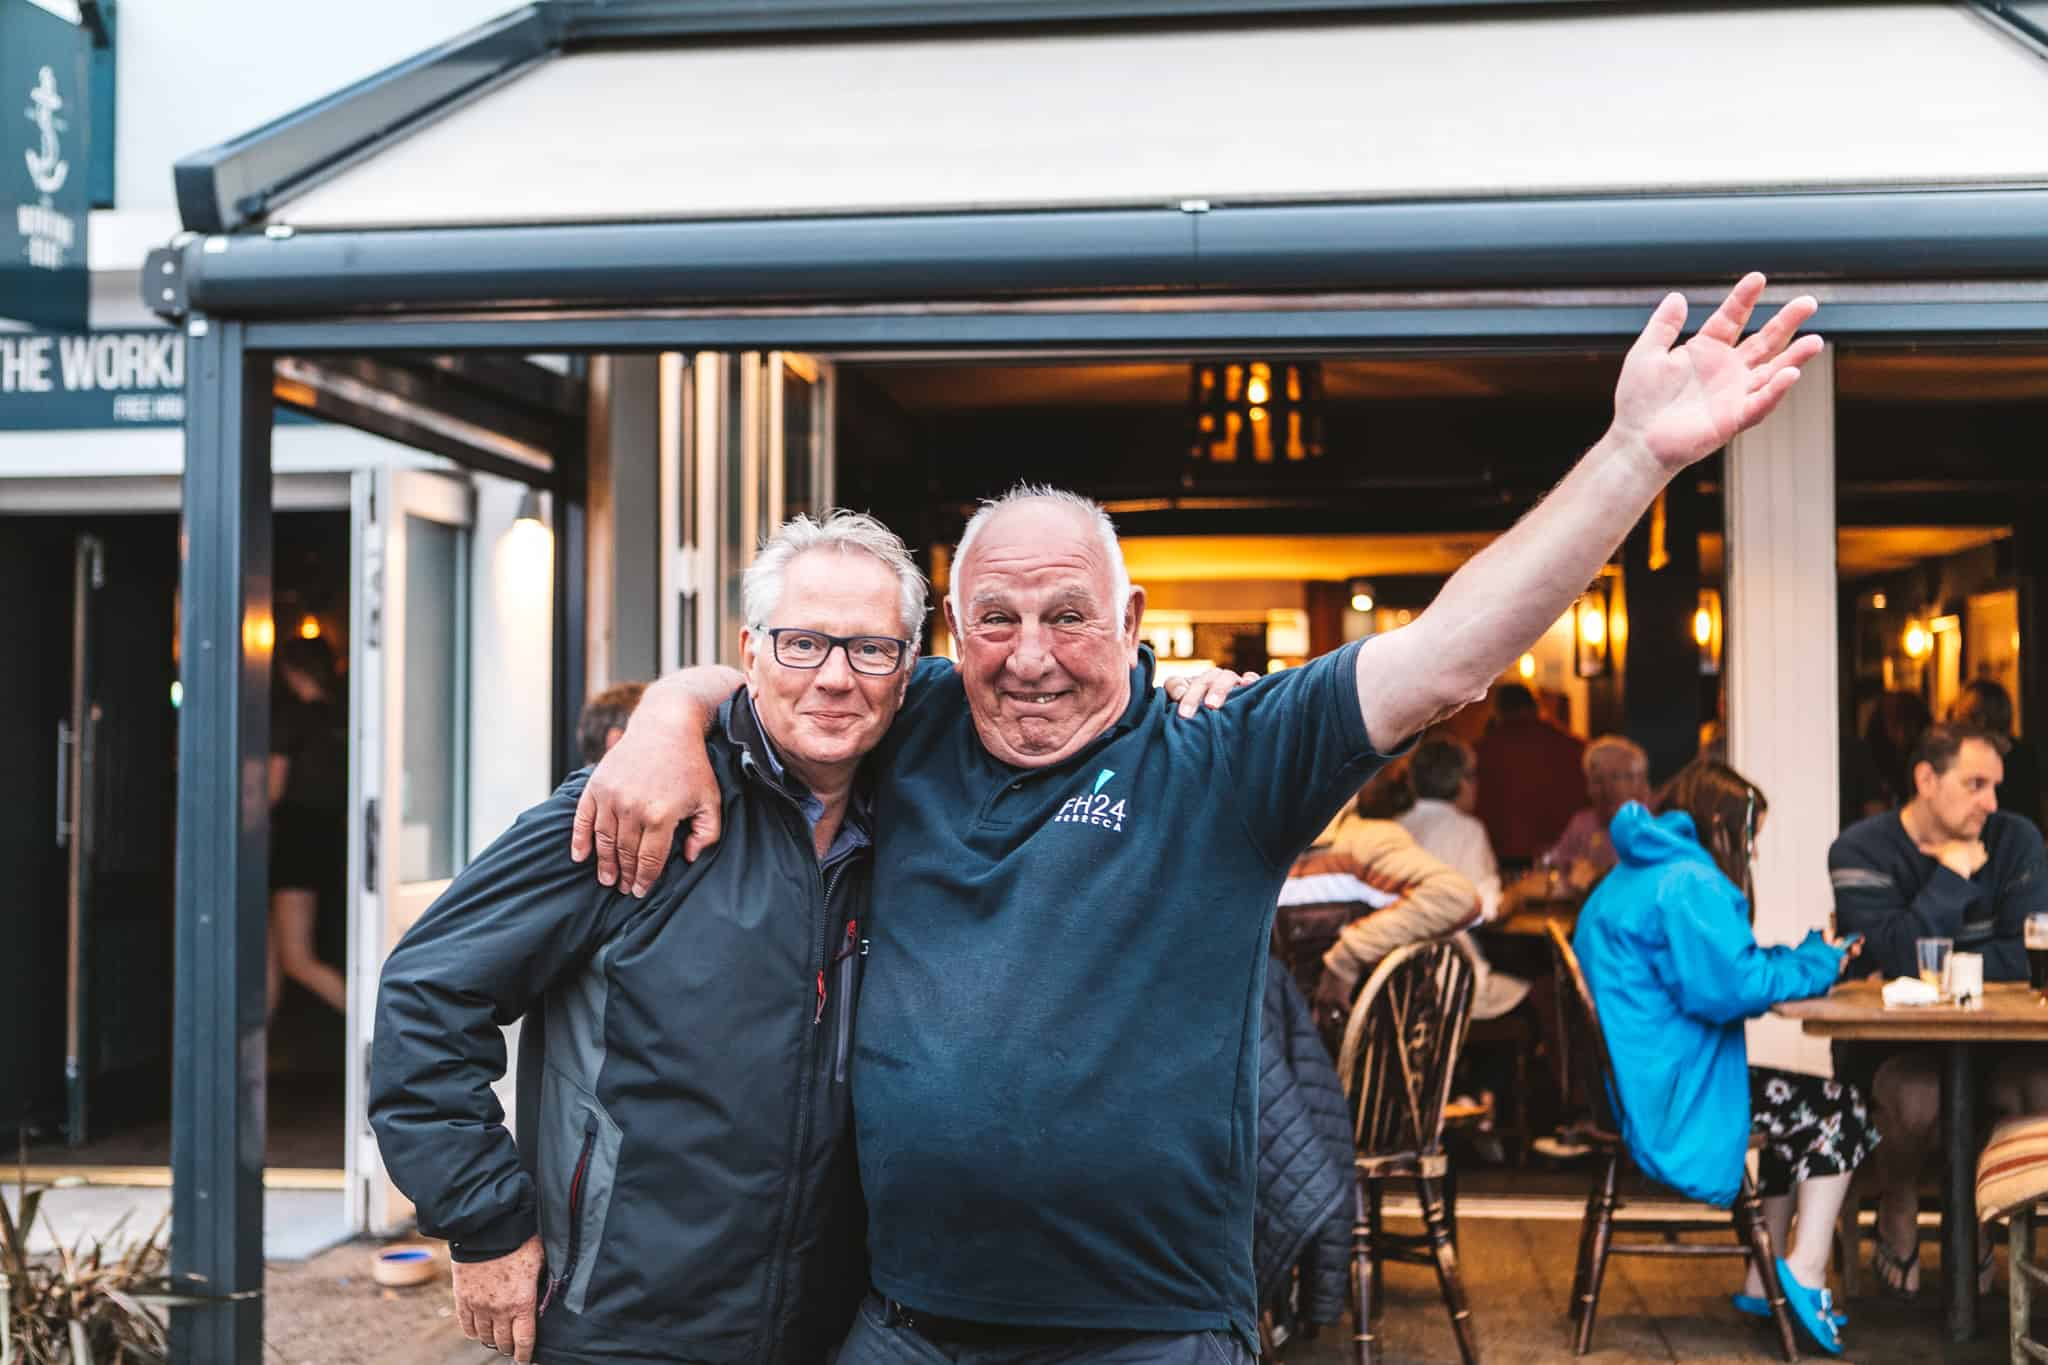 falmouth-week-at-the-working-boat-pub-live-music-events-falmouth-cornwall (8 of 114)